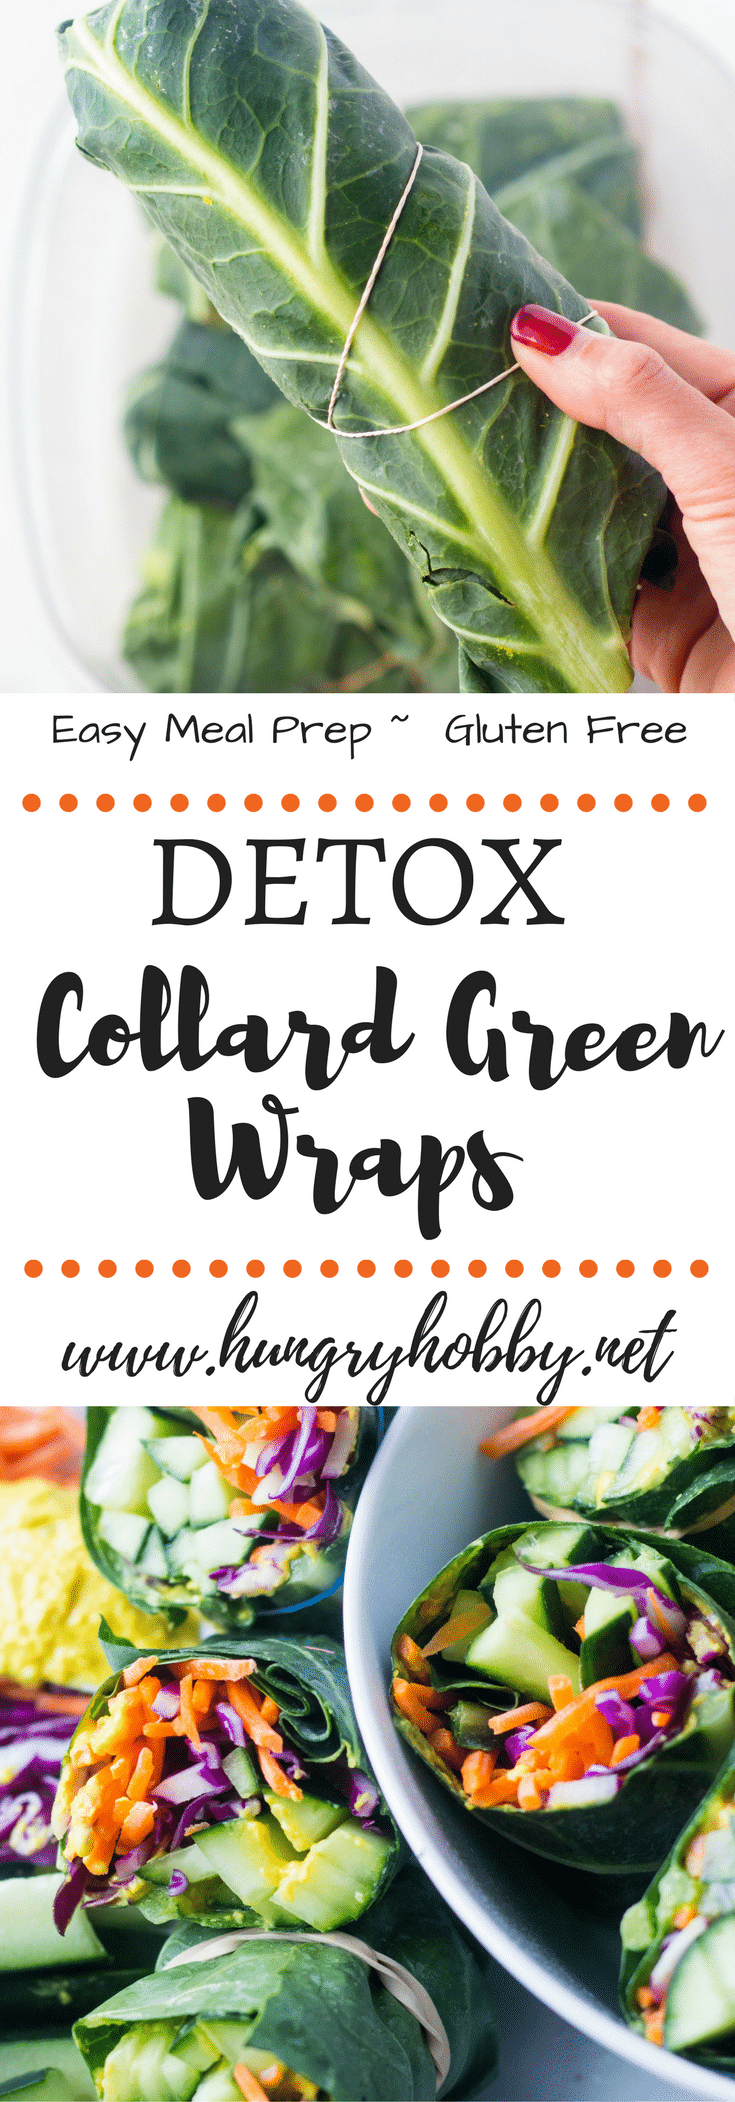 Ready for a reset?  These detox collard green wraps are great for meal prep and will make you feel ultra healthy!  Gluten Free, Vegan, Paleo